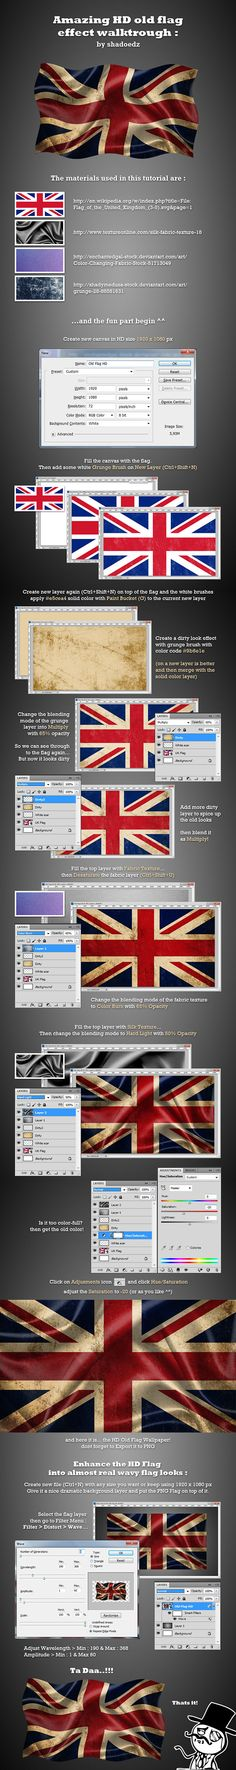 A task from my boss to create dirty look of the flag for use later in an apps that we currently develop. Actually he ask with no wavy effect, but some of my friends wants me to create the wavy one for lessons.so the tutorial idea is came out of my mind. Actions Photoshop, Photoshop Effects, Photoshop Design, Photoshop Tutorial, Graphic Design Lessons, Graphic Design Tutorials, Graphic Design Inspiration, Graphisches Design, Tool Design